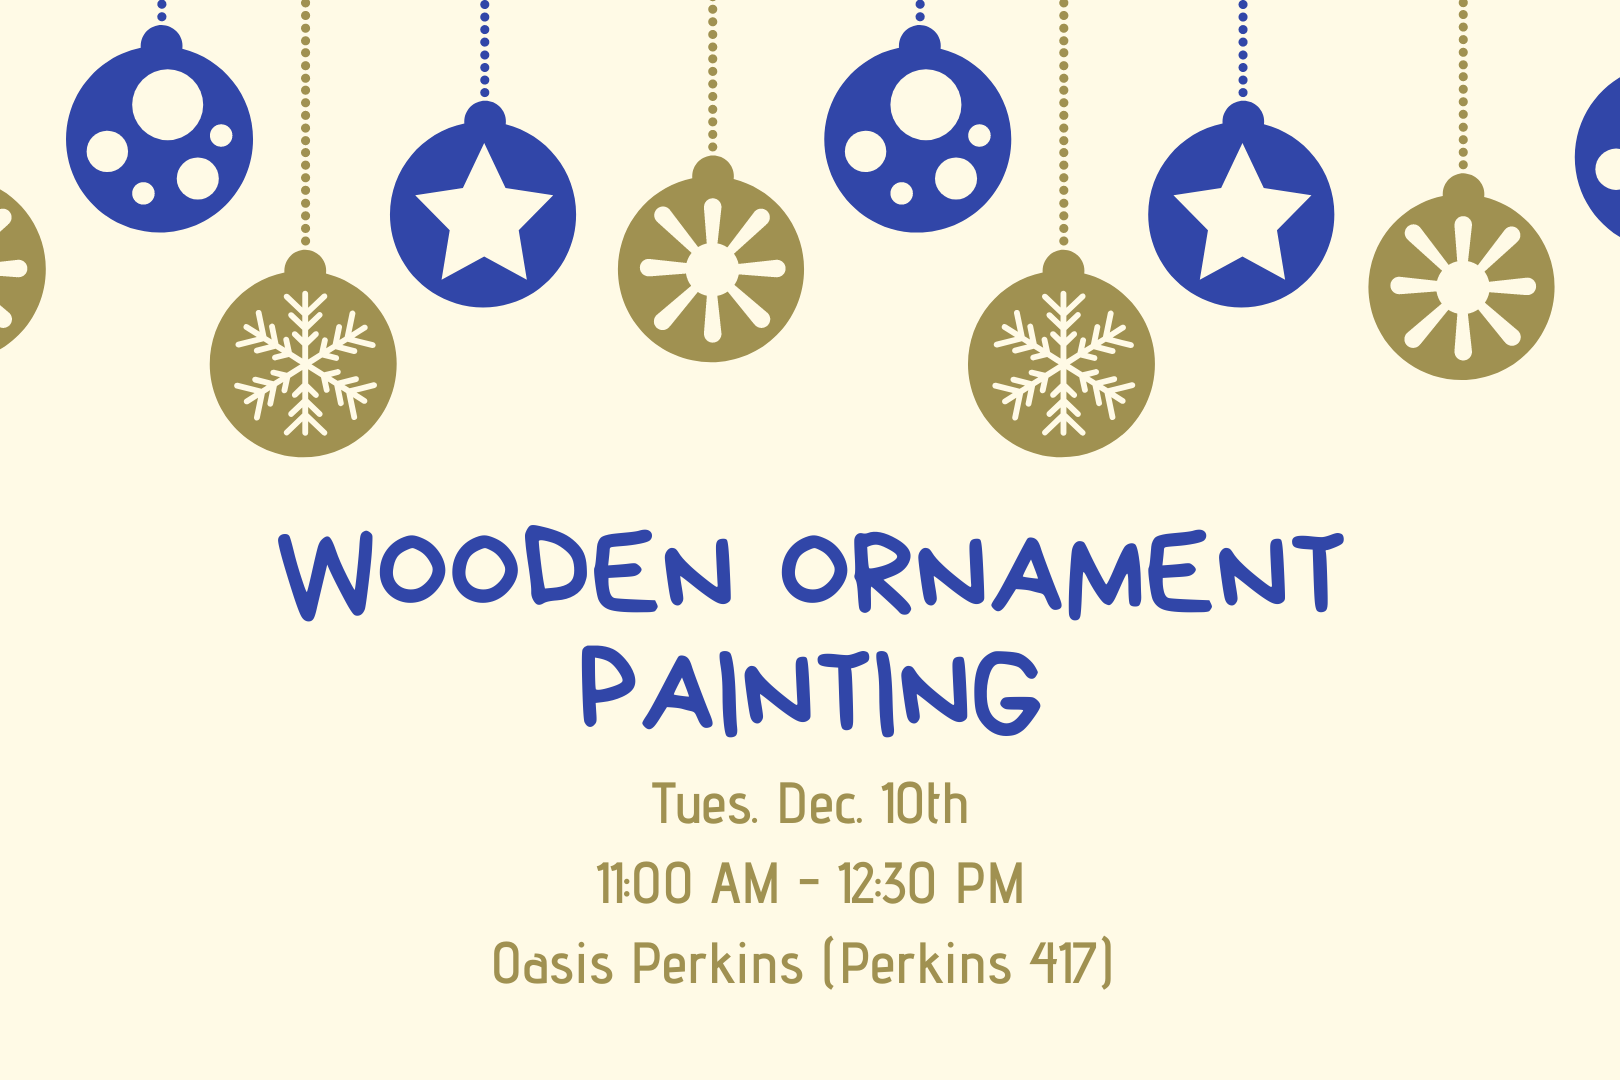 Wooden Ornament Painting on Tuesday, December 10th from 11:00AM to 12:30PM in Oasis Perkins Room 417.